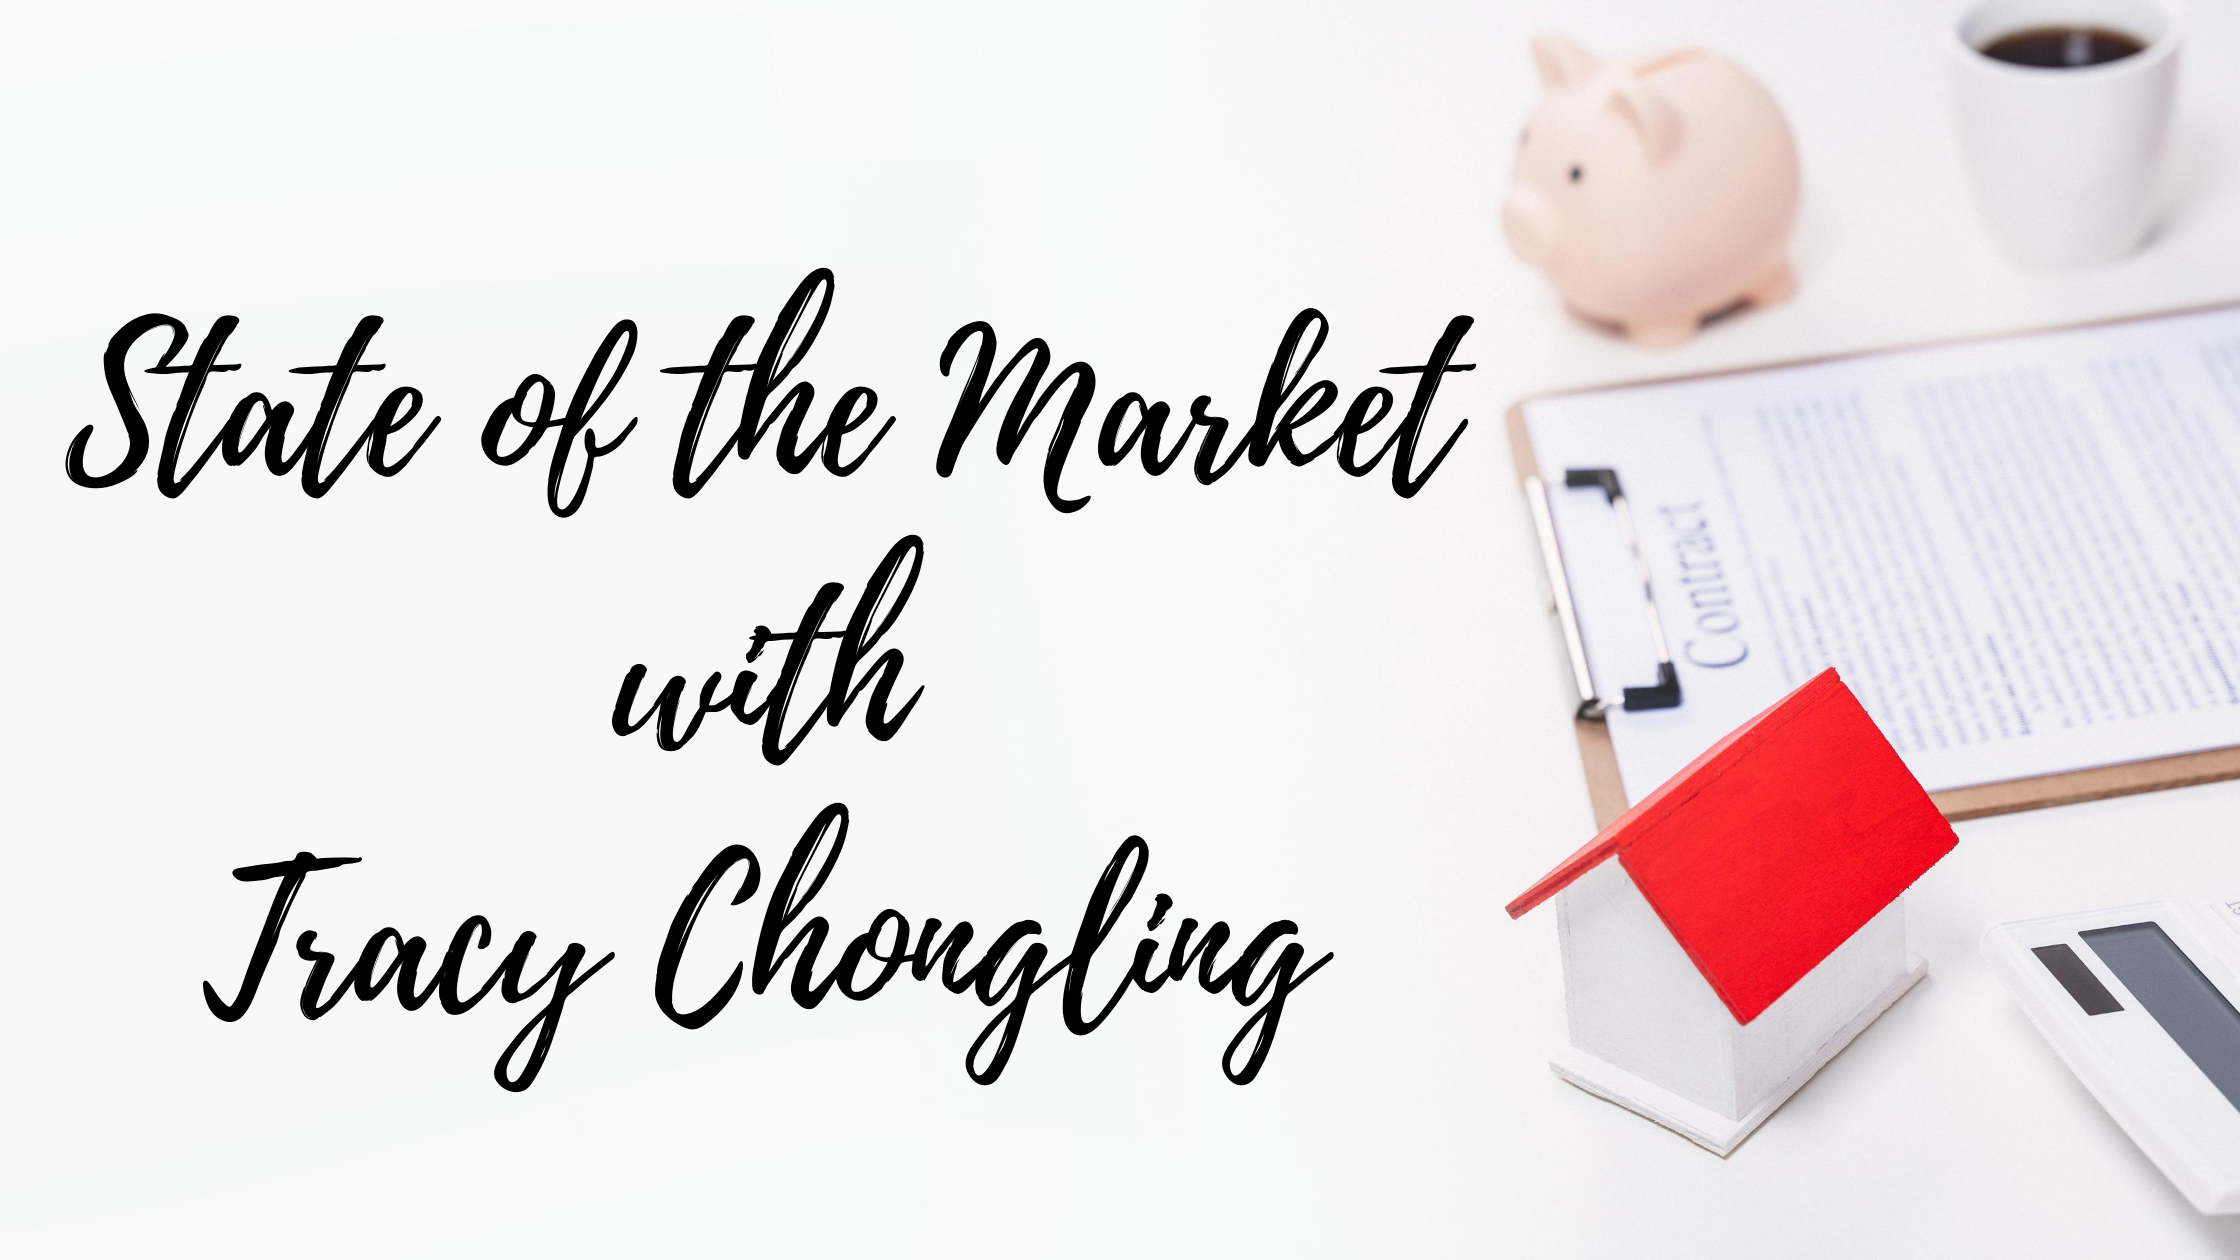 Episode #94: State of the Market with Tracy Chongling